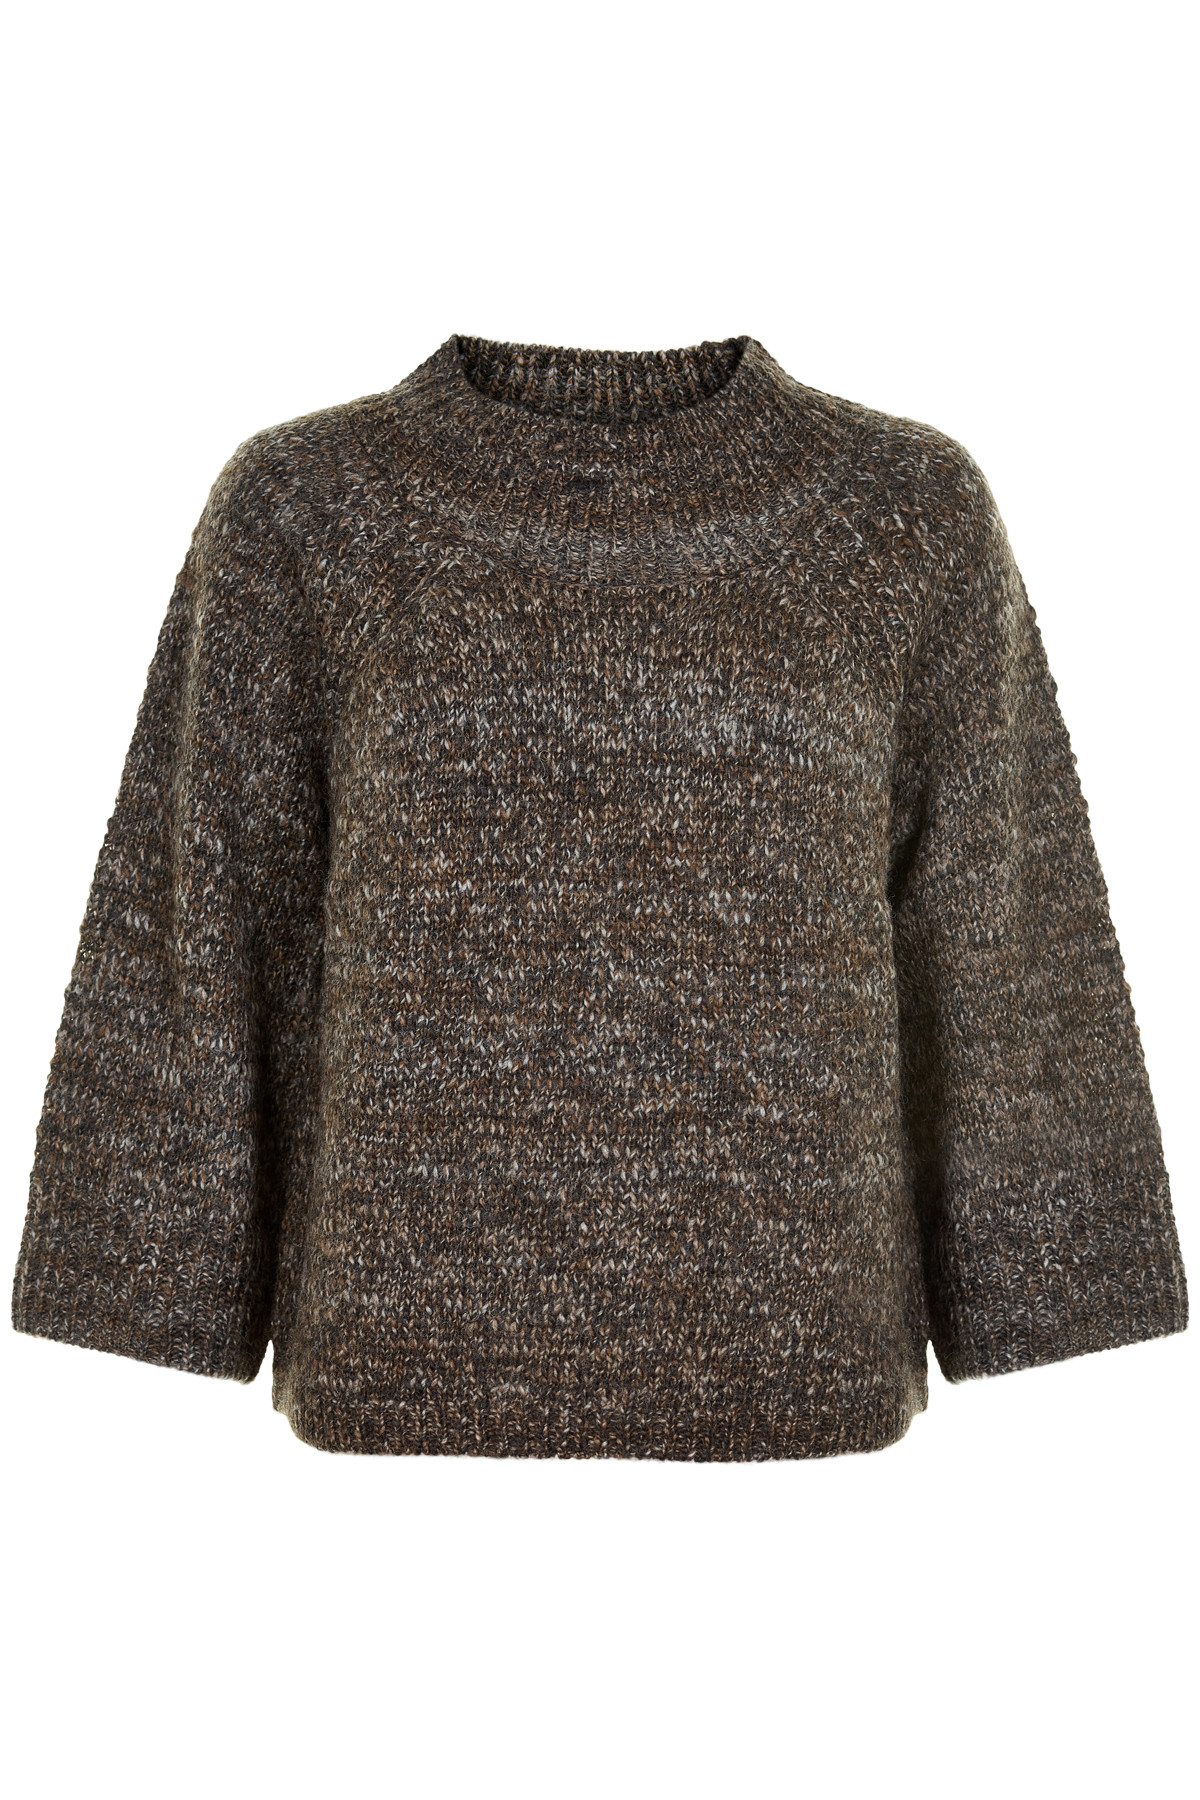 Image of   AND LESS ALHASTI PULLOVER 5519201 C (Canteen, M)